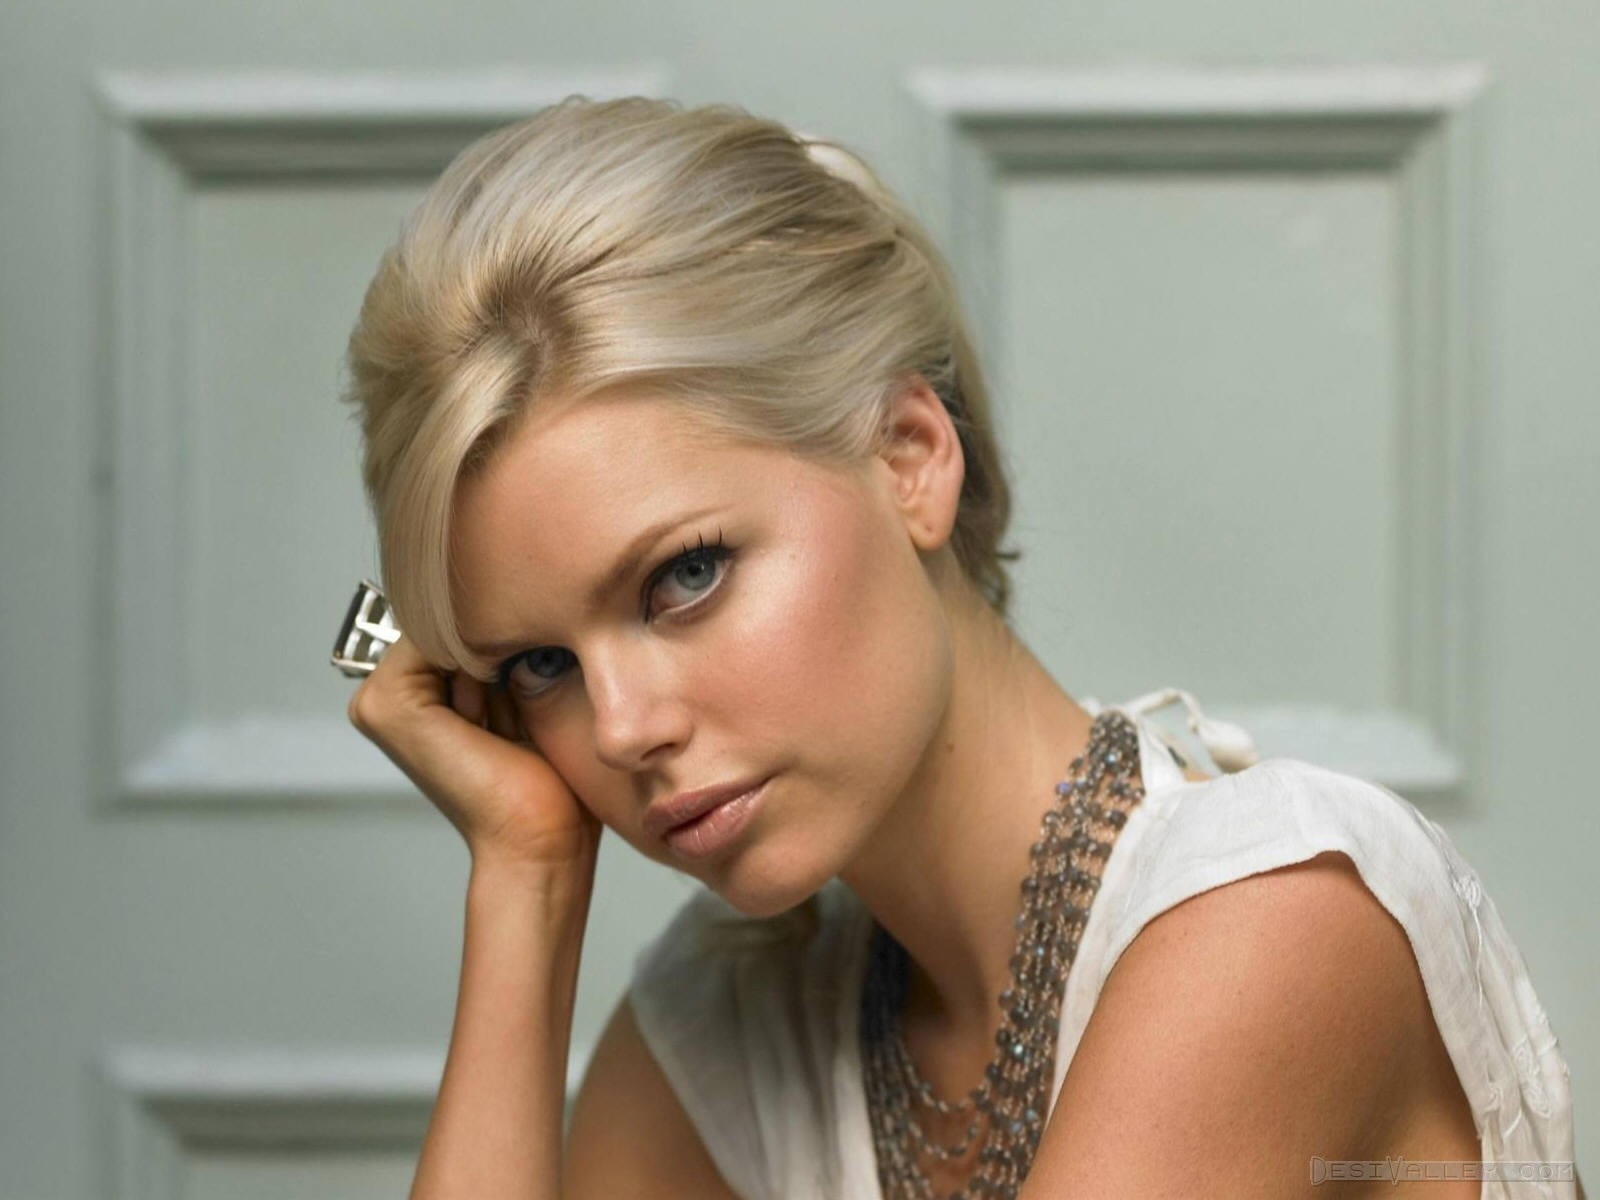 Lets Get Real Actress Sophie Monk Poses Completely -2771